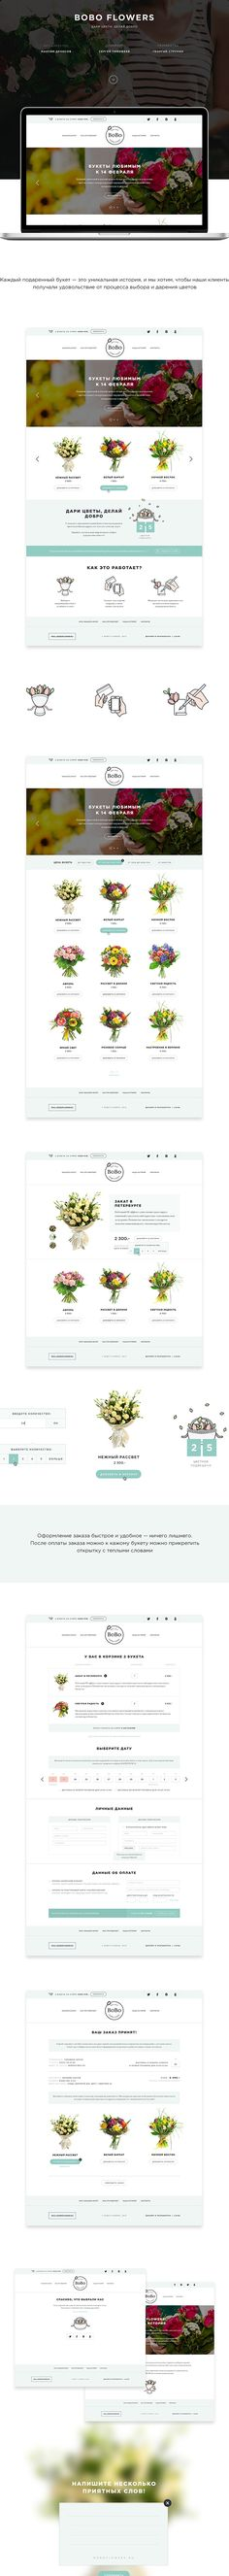 BOBO FLOWERS on Web Design Served